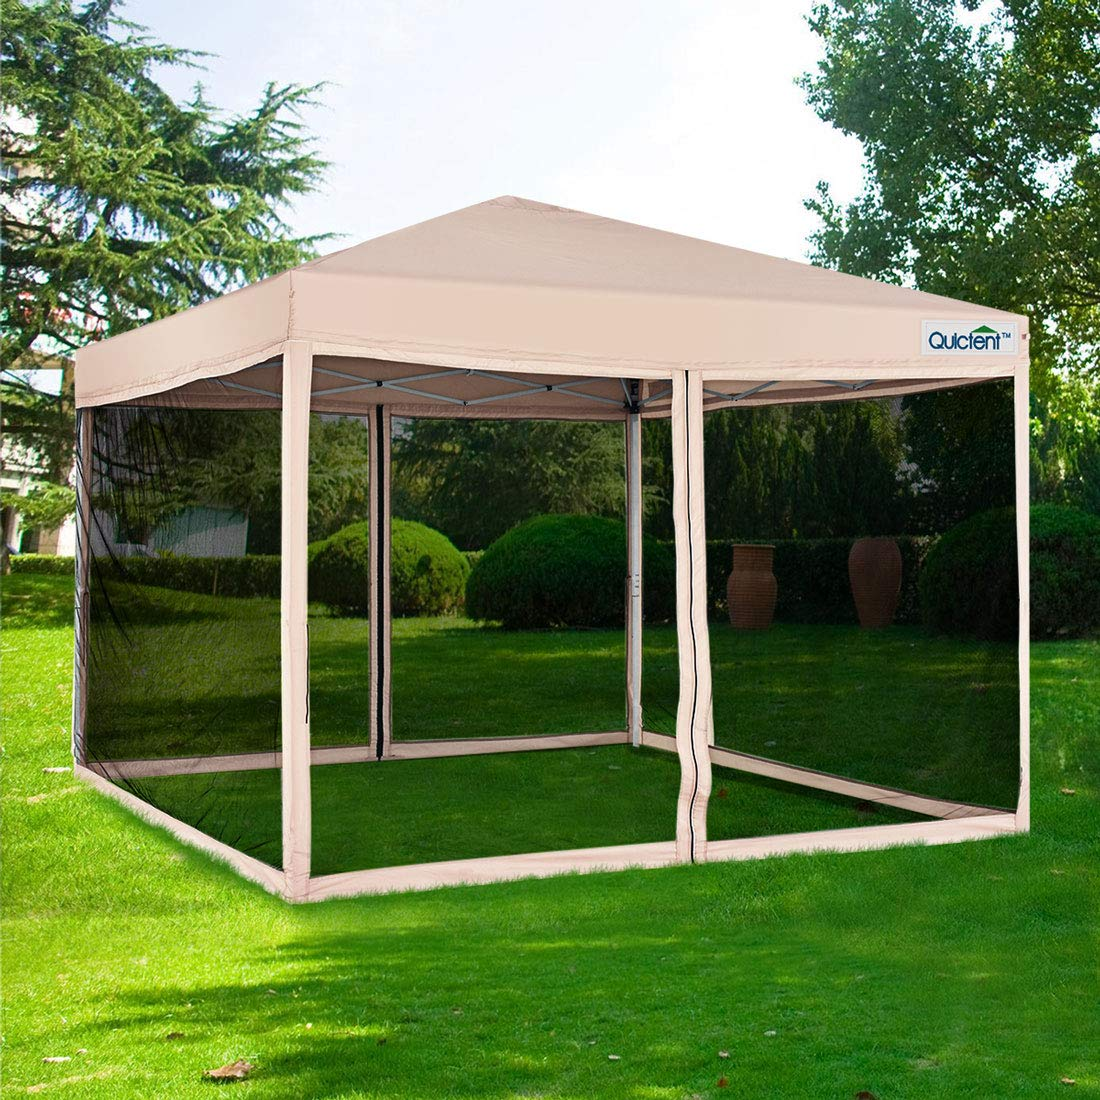 Quictent Ez Pop up Canopy with Netting Screen House Tent Mesh Side Wall-3 Colors 4 Sizes